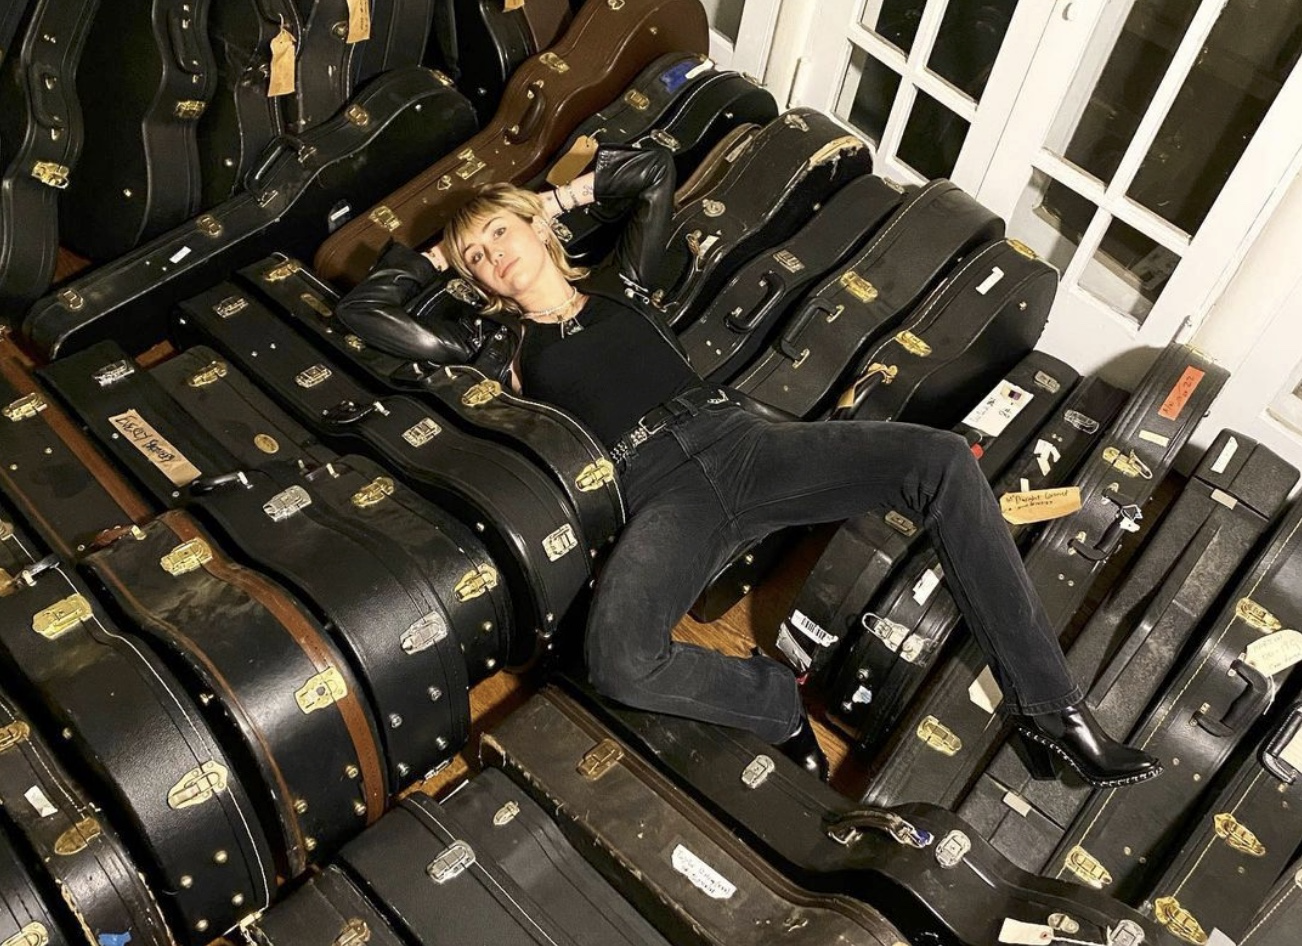 Miley Cyrus lying on dozens of guitar cases